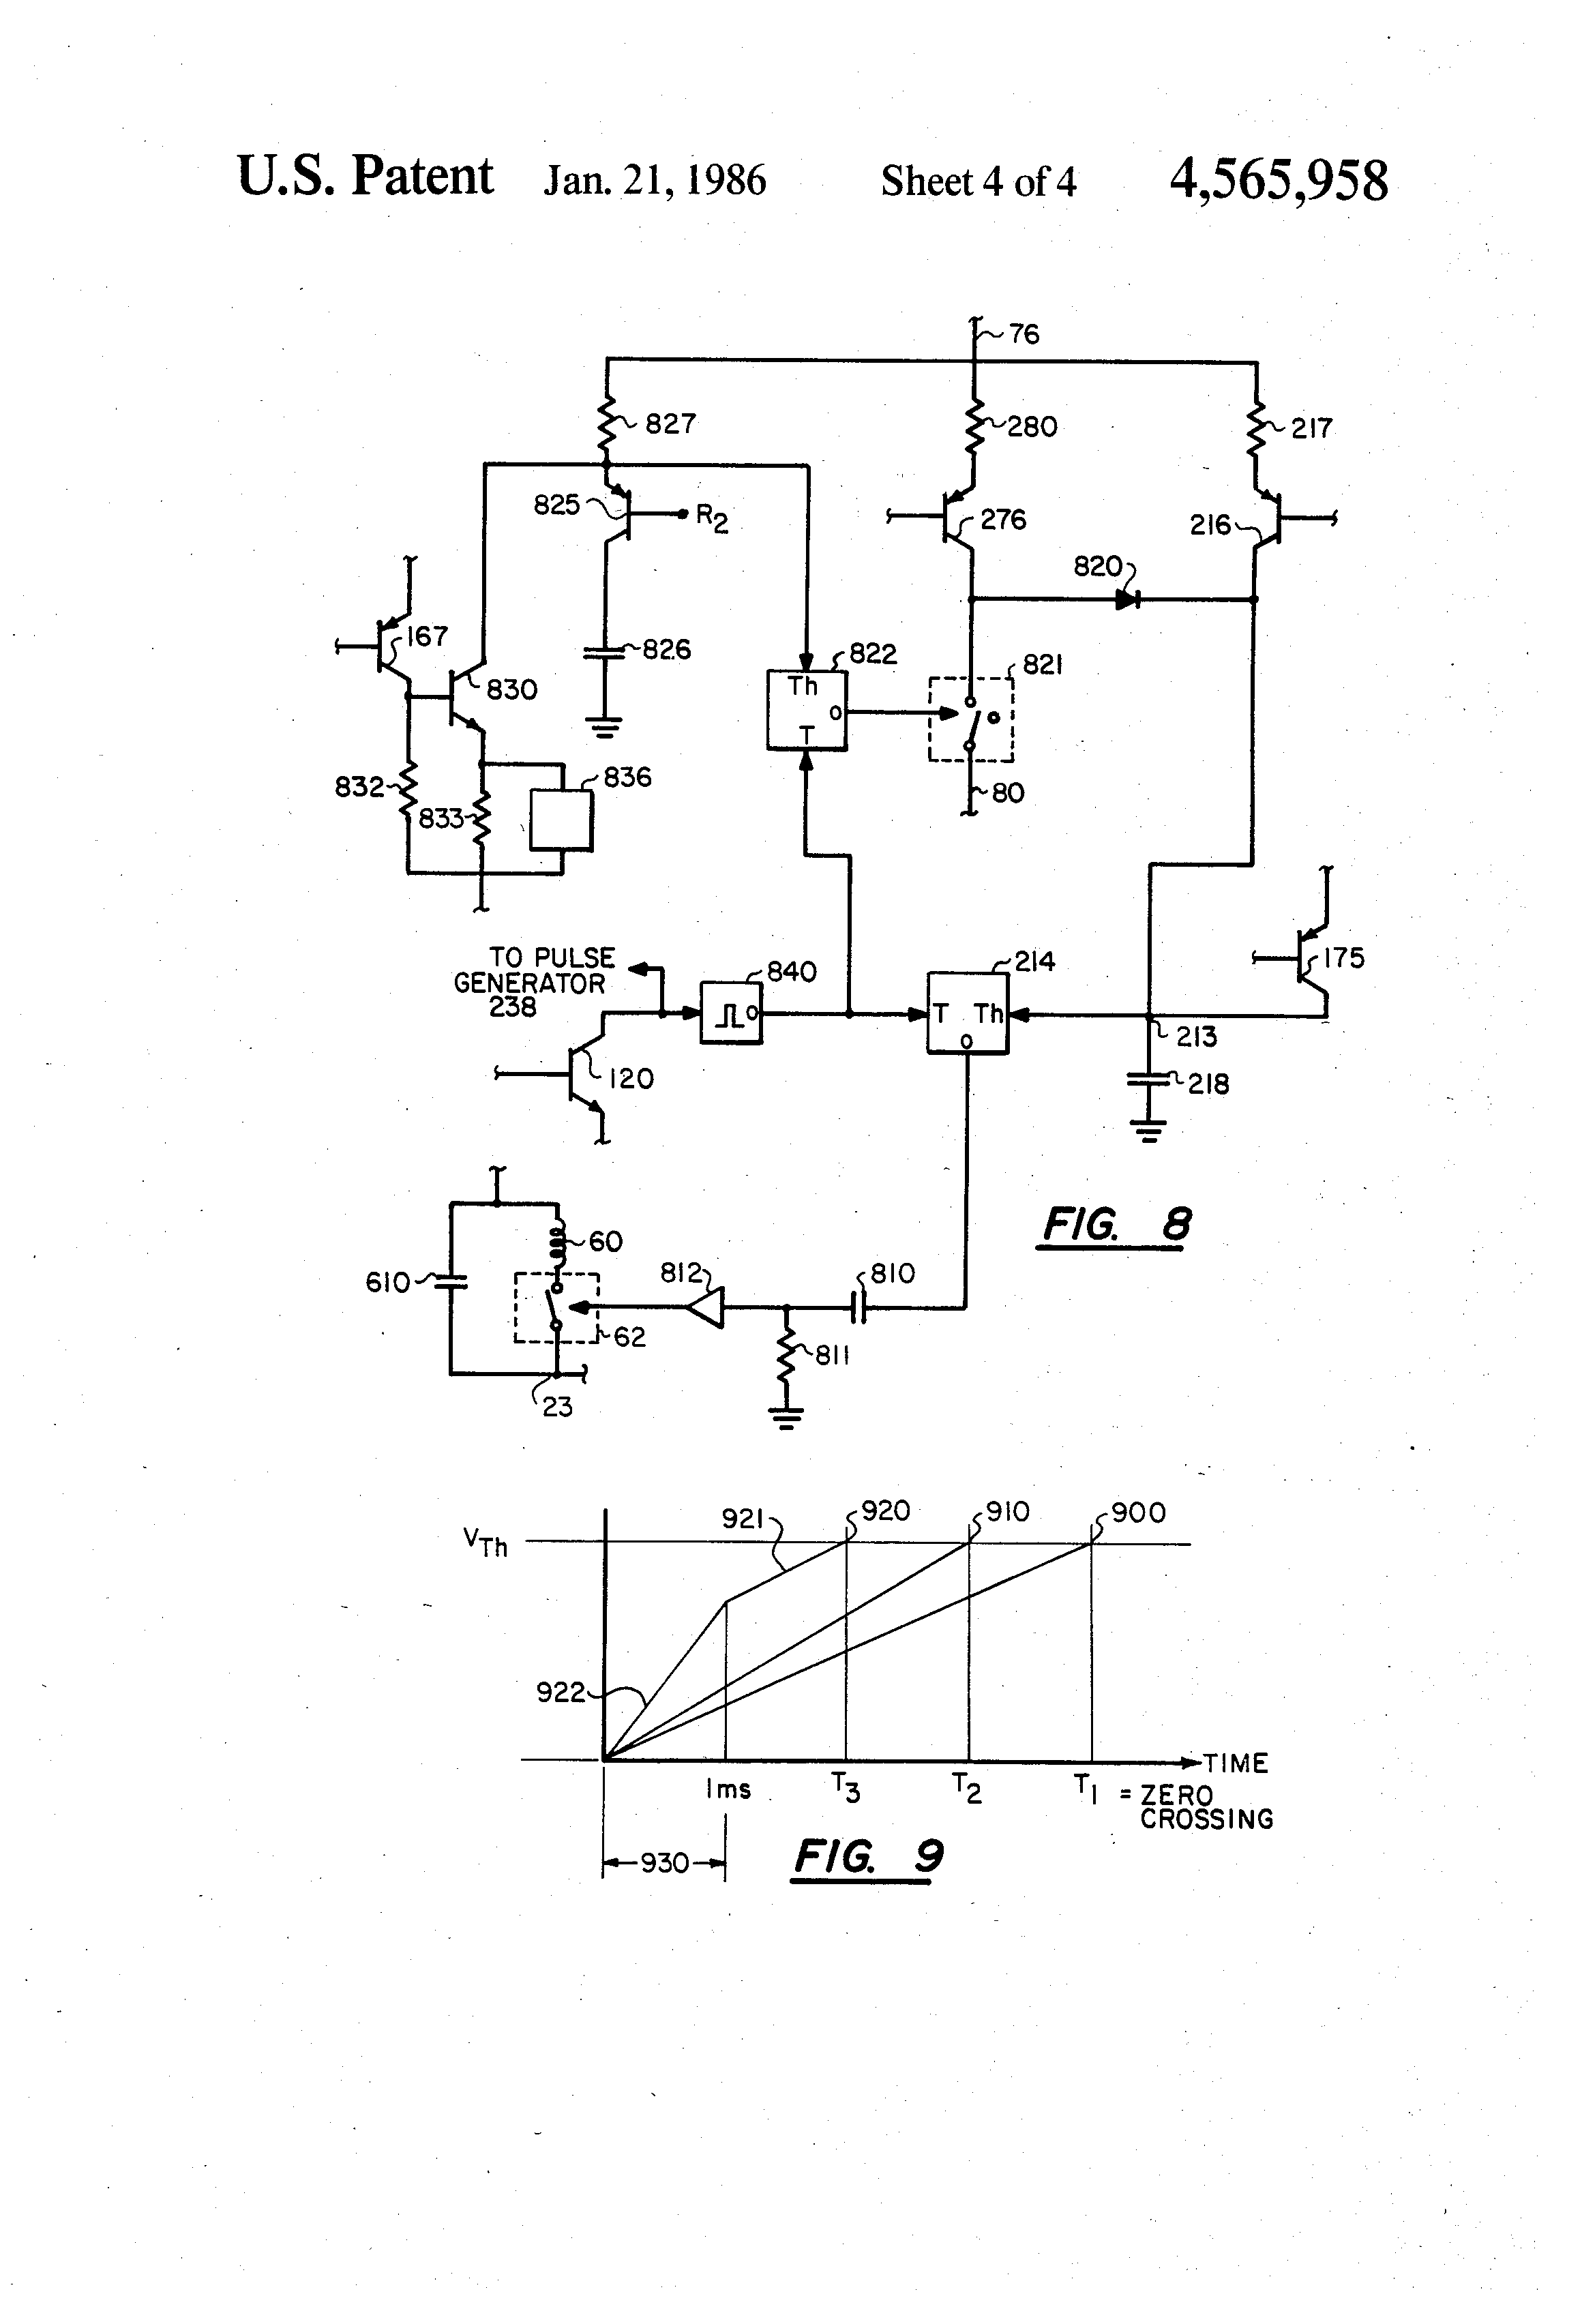 Patent Us4565958 Ac Line Voltage Regulator With Controlled Energy 555 Timer Ramp Generator Drawing